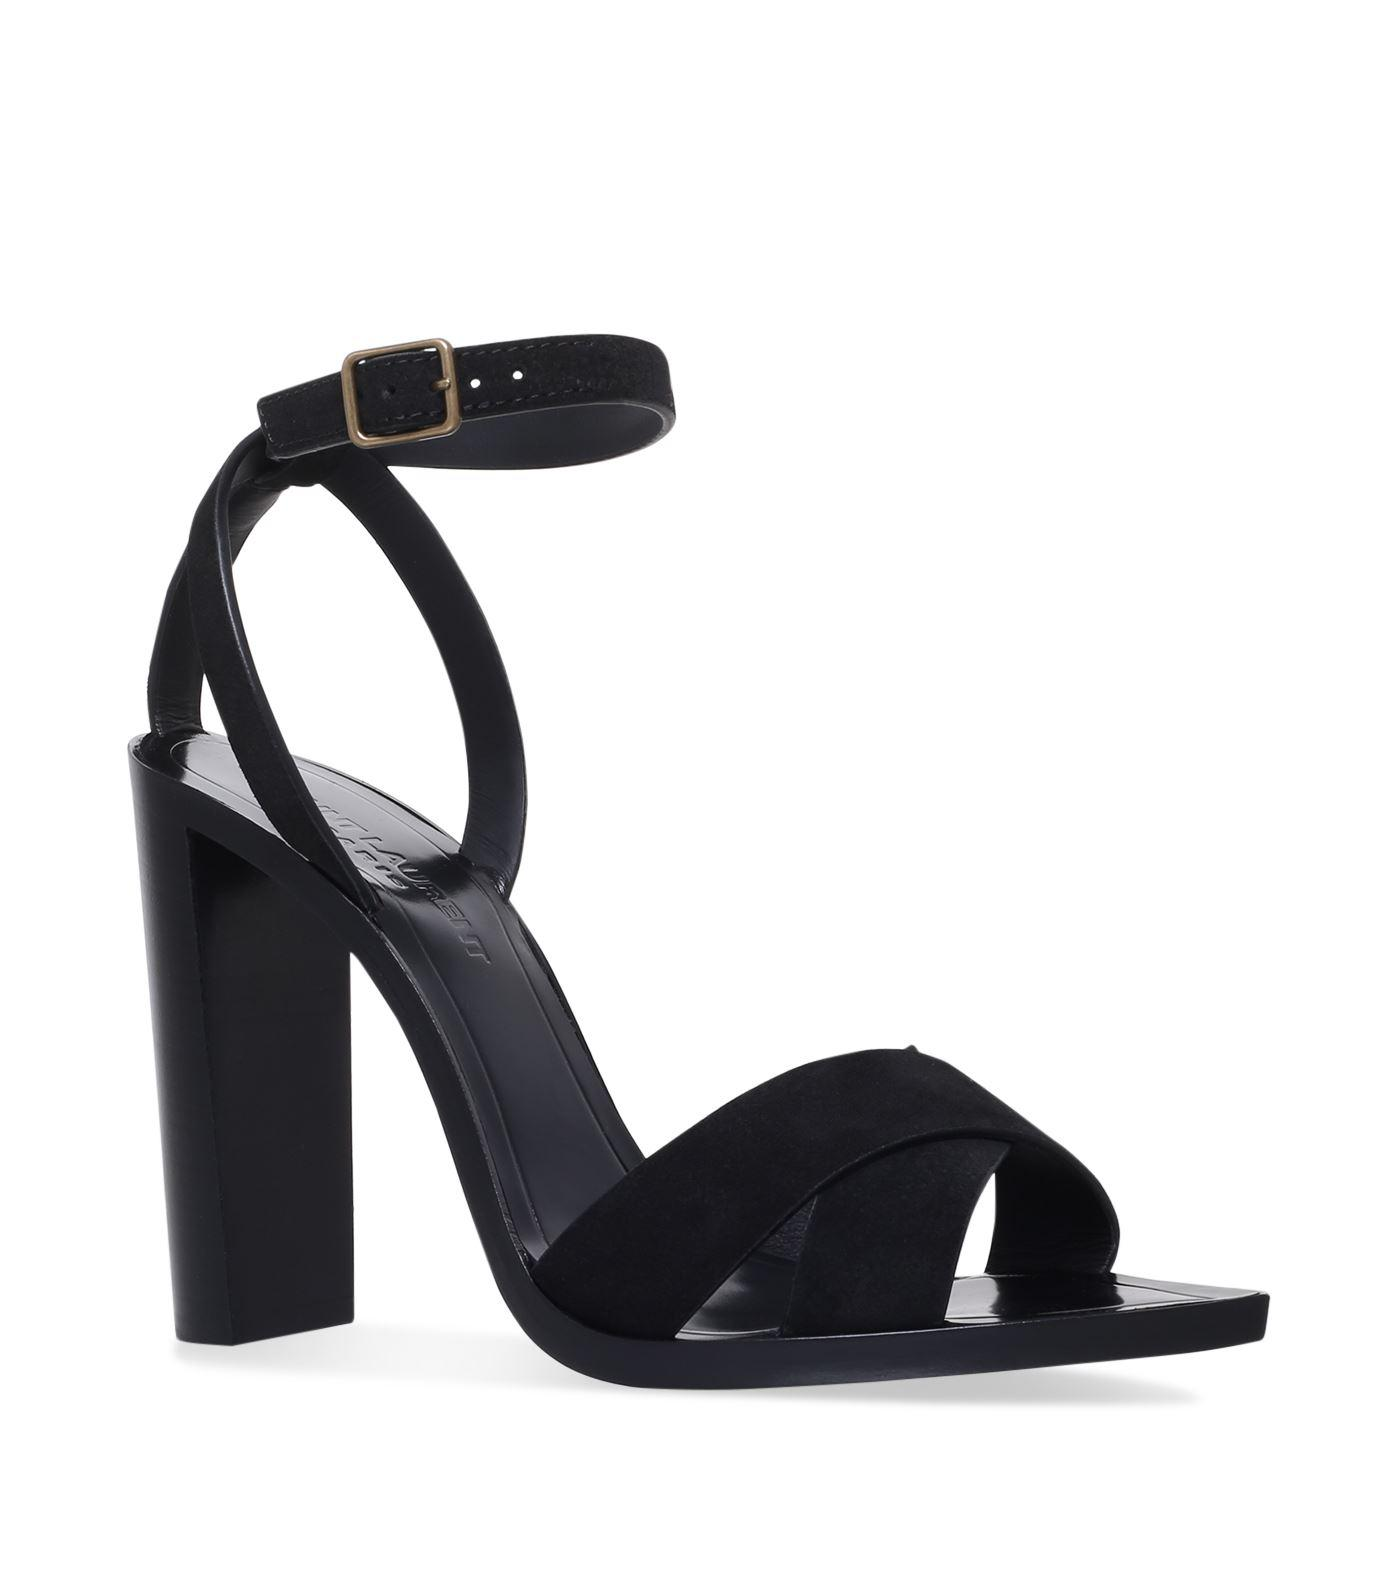 Tanger sandals - Black Saint Laurent l7TaN9xkg